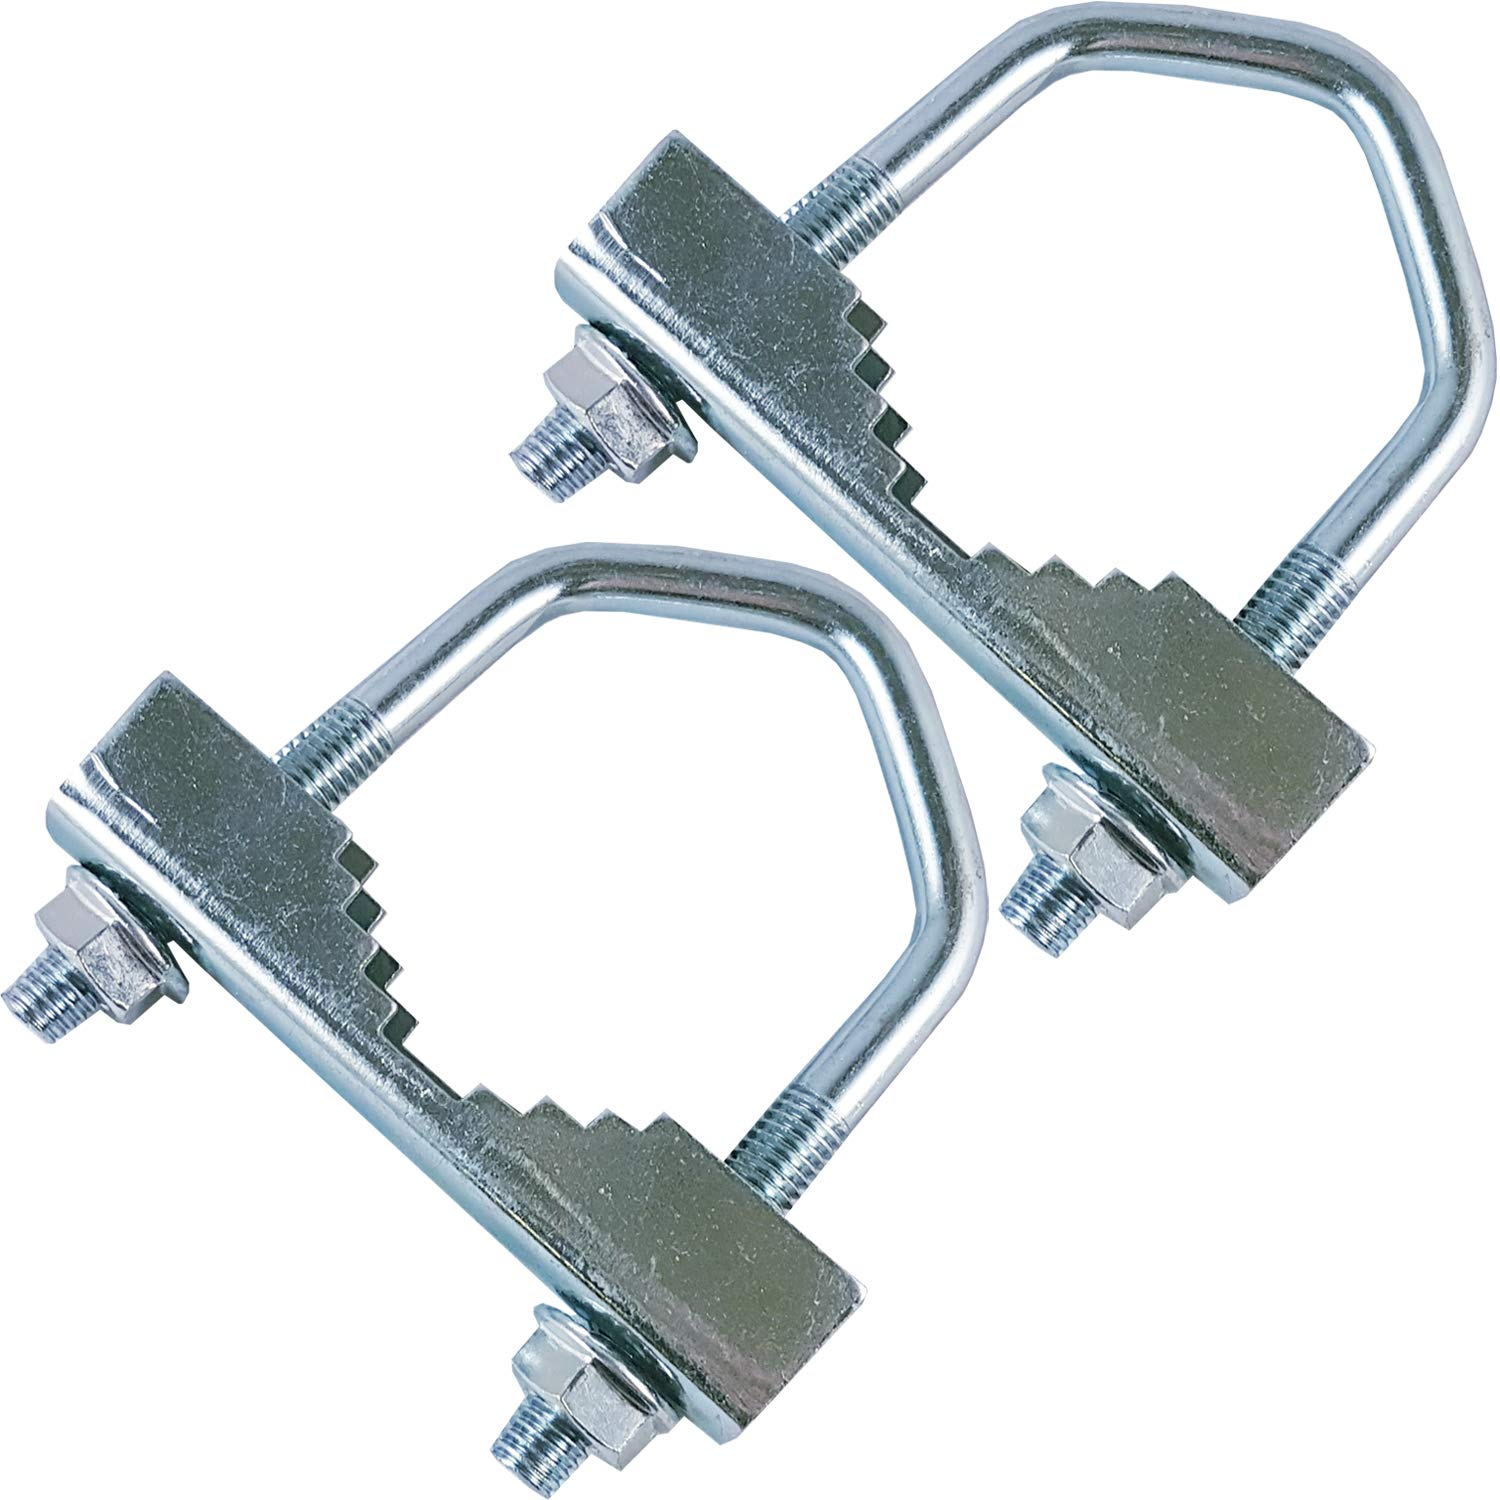 """2x Heavy Duty Jaw V-Bolts -up to 2"""" Aerial Pole/Mast- Steel Construction For Outdoor Use, U-Bolt Clamp, Satellite, Sat, Pipe, Bracket, Fixing, Mount, Wall, Roof"""